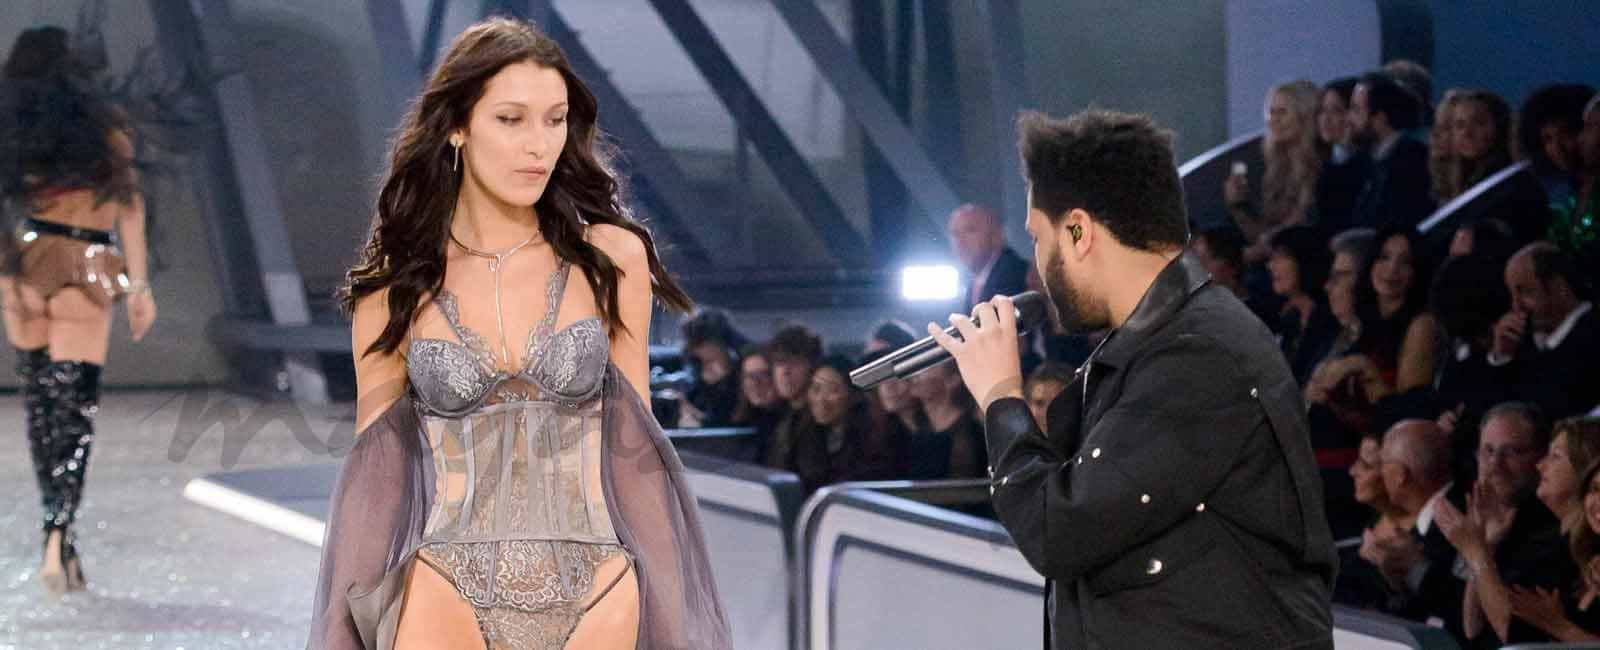 El «tenso» reencuentro de Bella Hadid y The Weeknd